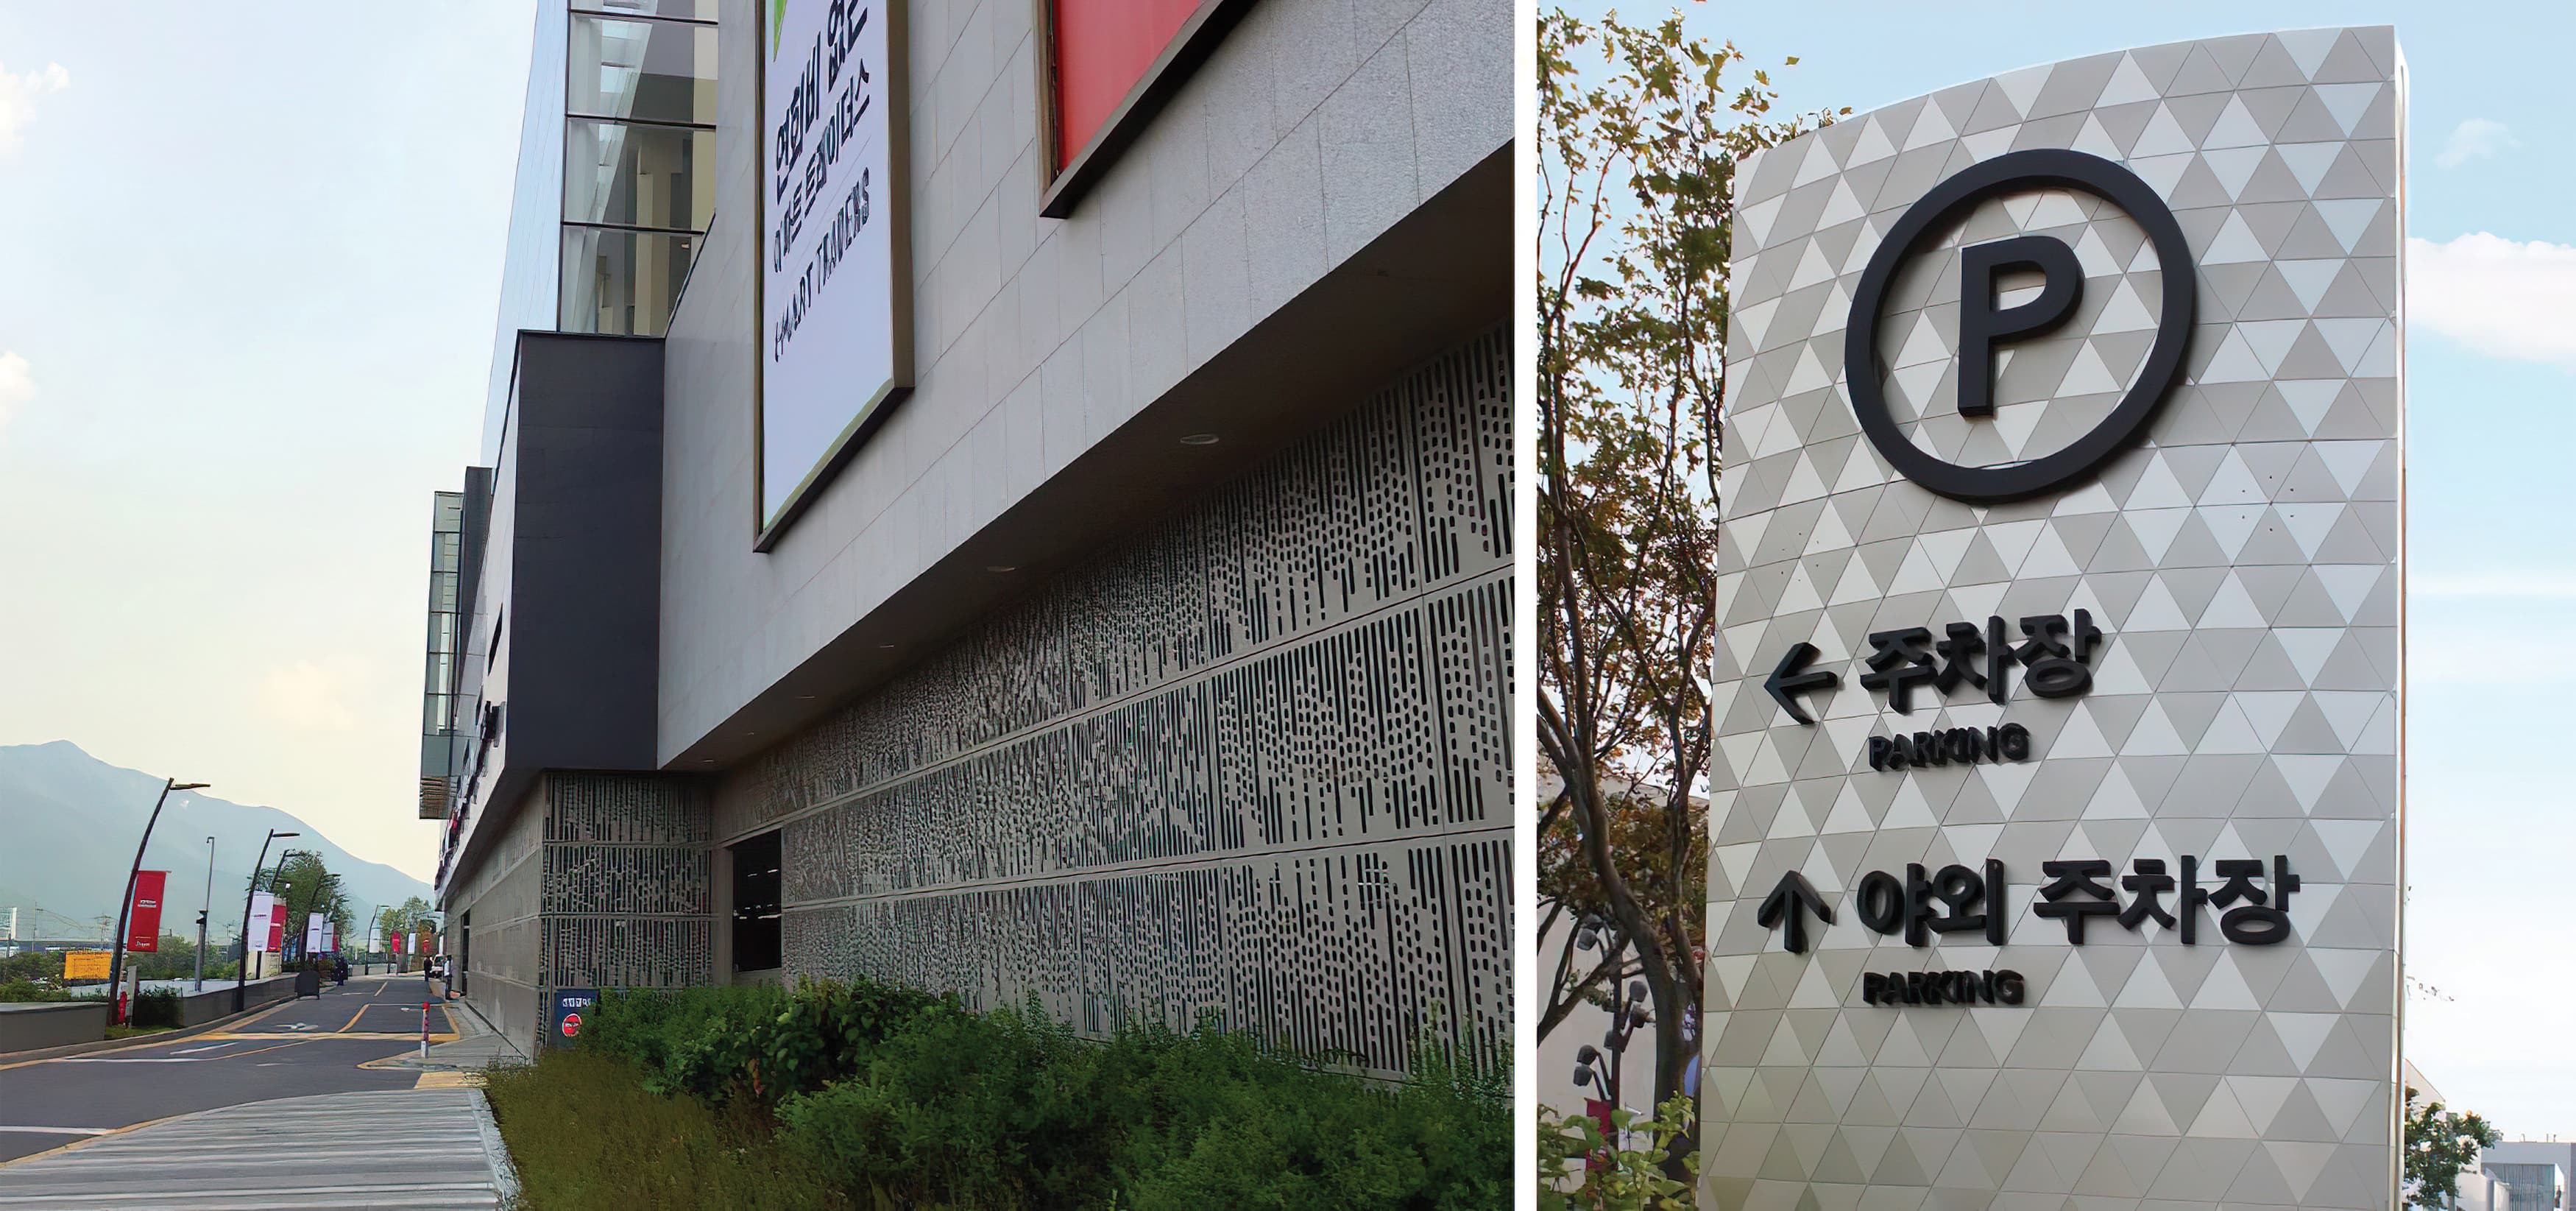 Starfield, a retail project in Hanam, South Korea. Parking Identity and Directional Signage